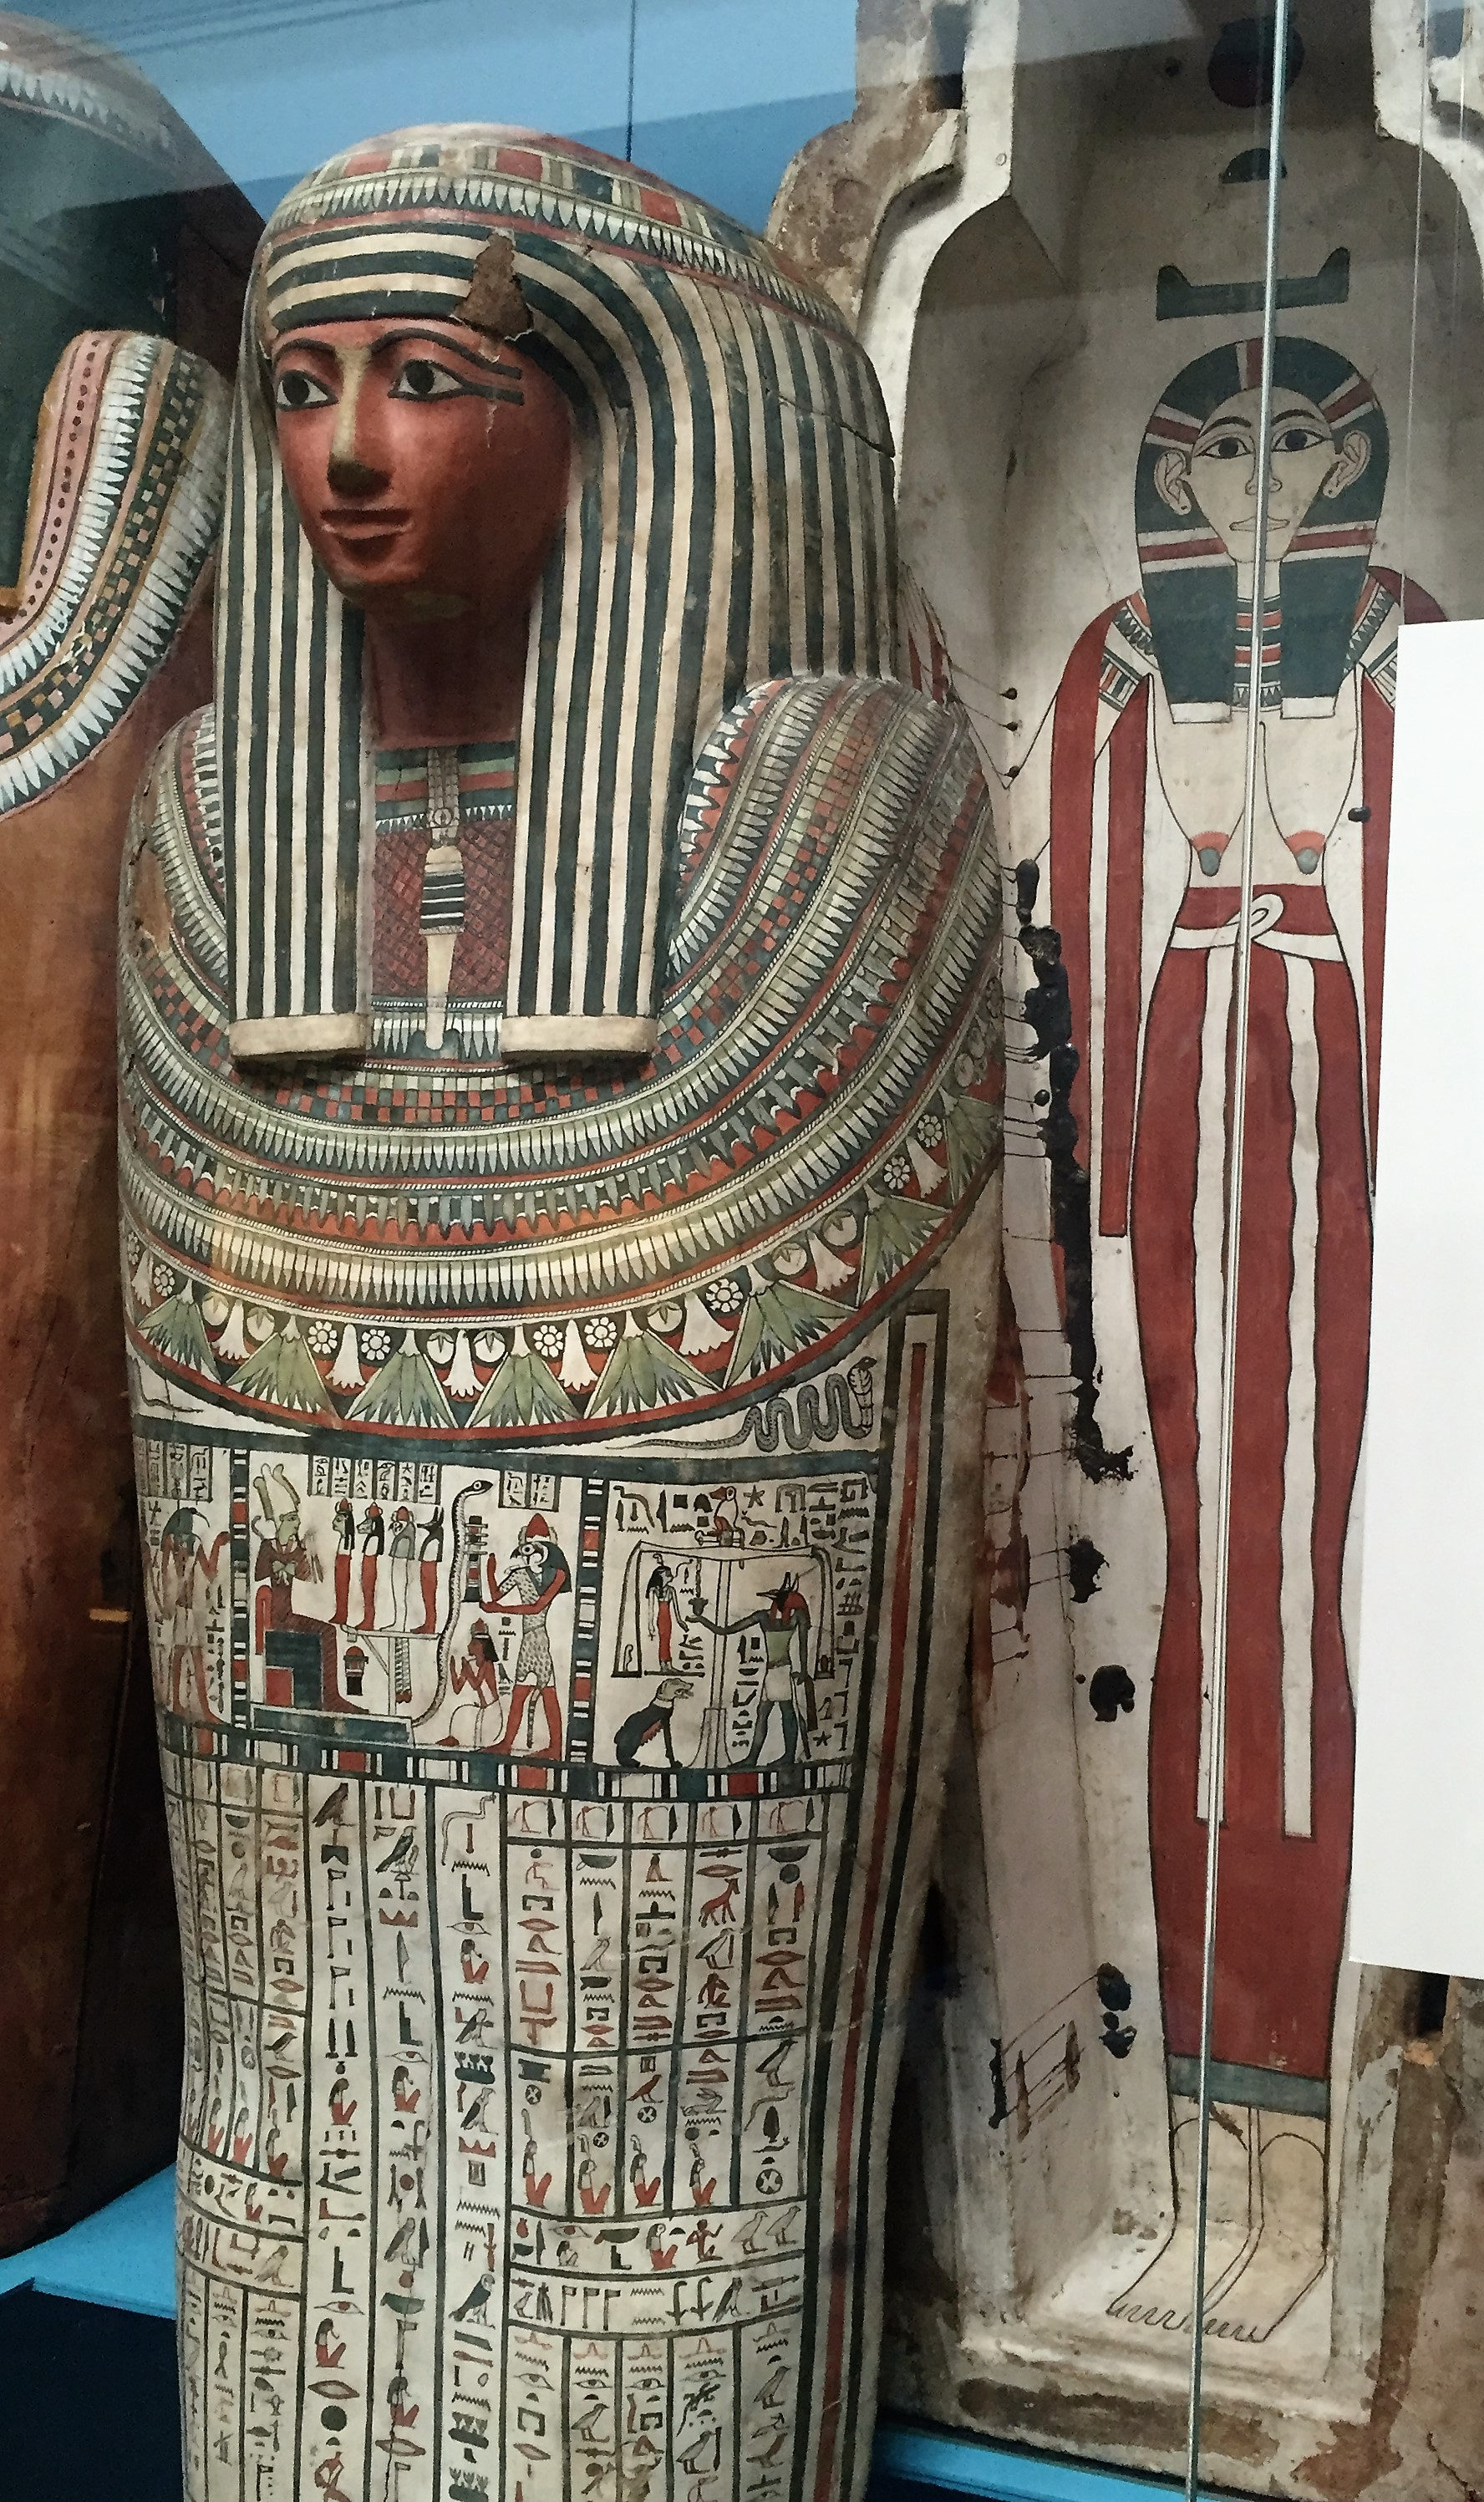 pharaoh mummification and afterlife The underworld and the afterlife in ancient egypt to the ancient egyptians, the underworld was a dangerous region that one's spirit had to traverse.